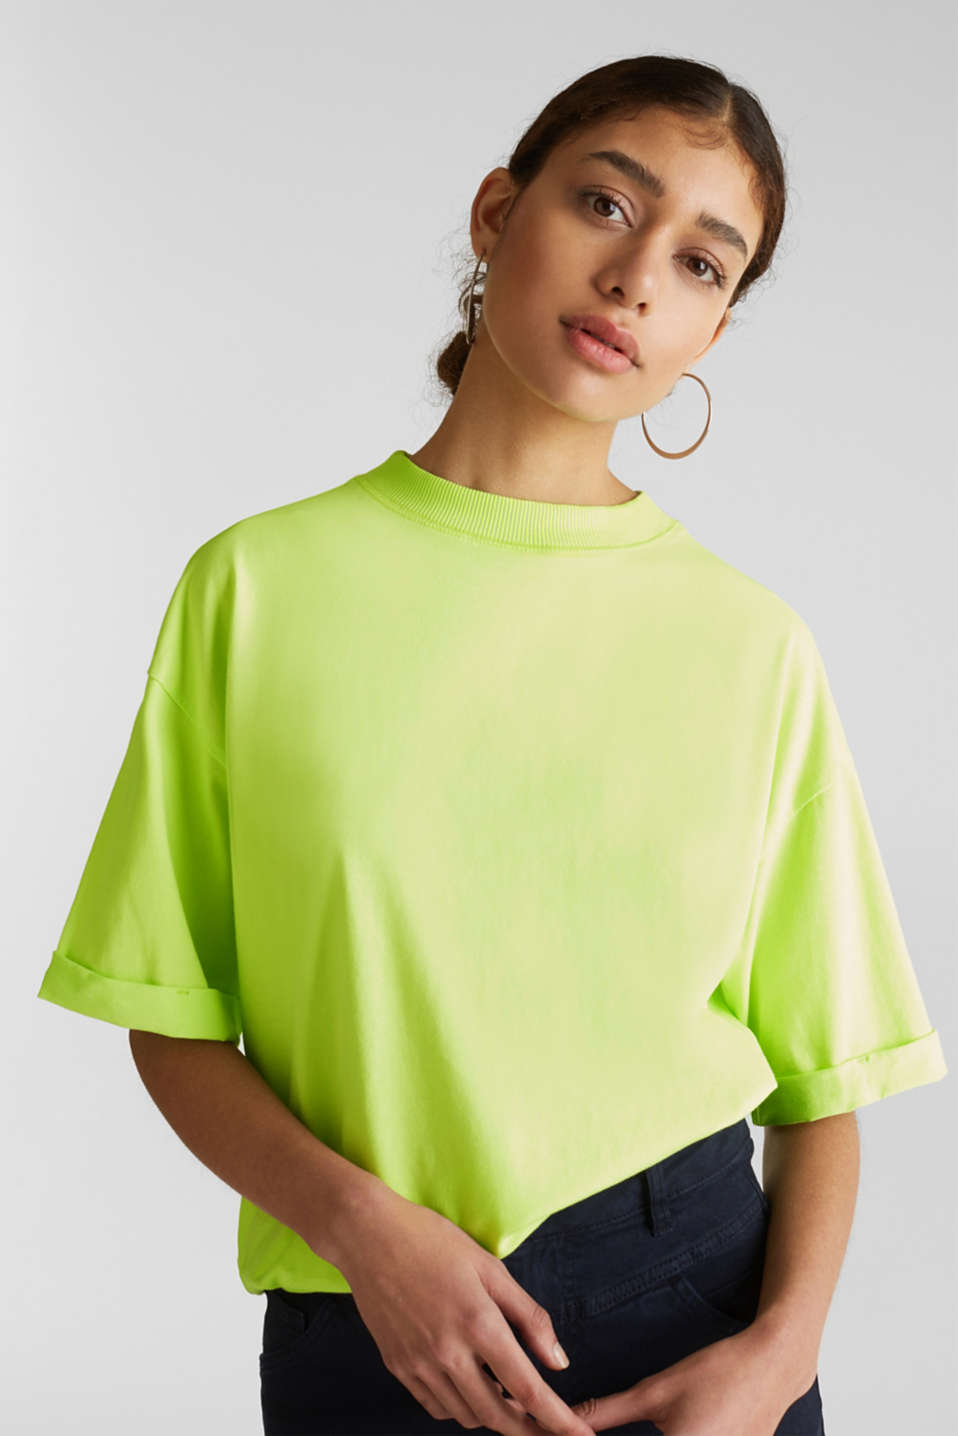 edc - NEON top with wide sleeves, 100% cotton